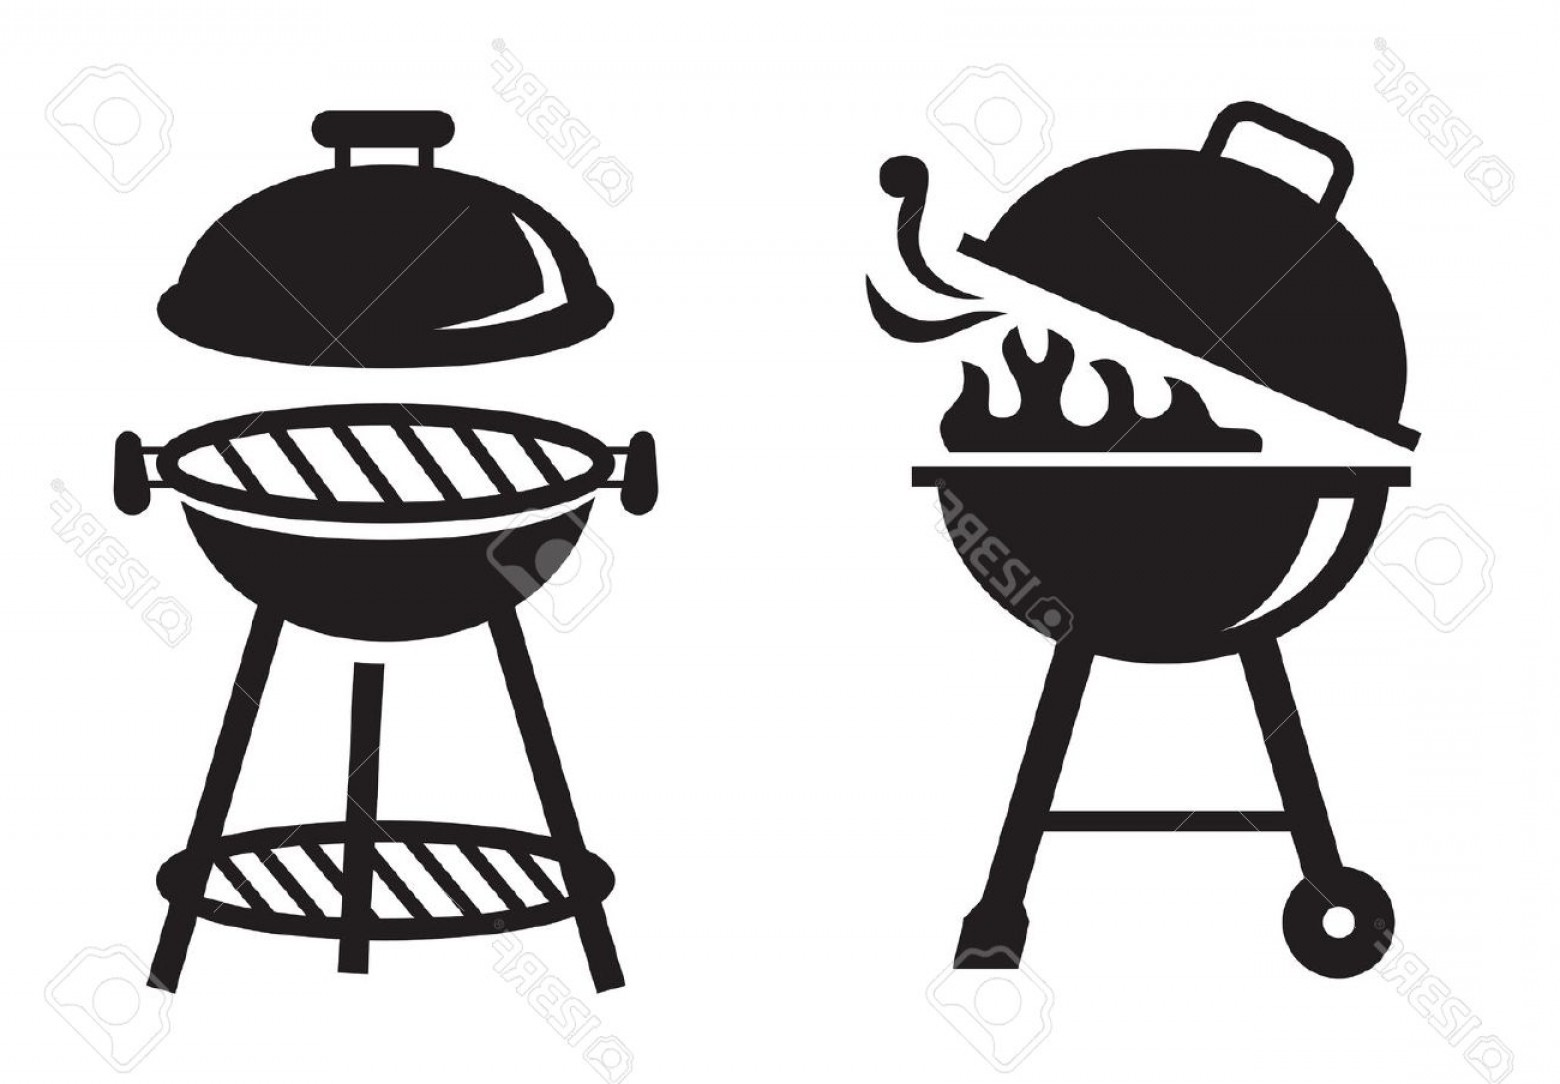 BBQ Grill Vector Black And White: Photostock Vector Vector Black Bbq Grill Icons On White Background